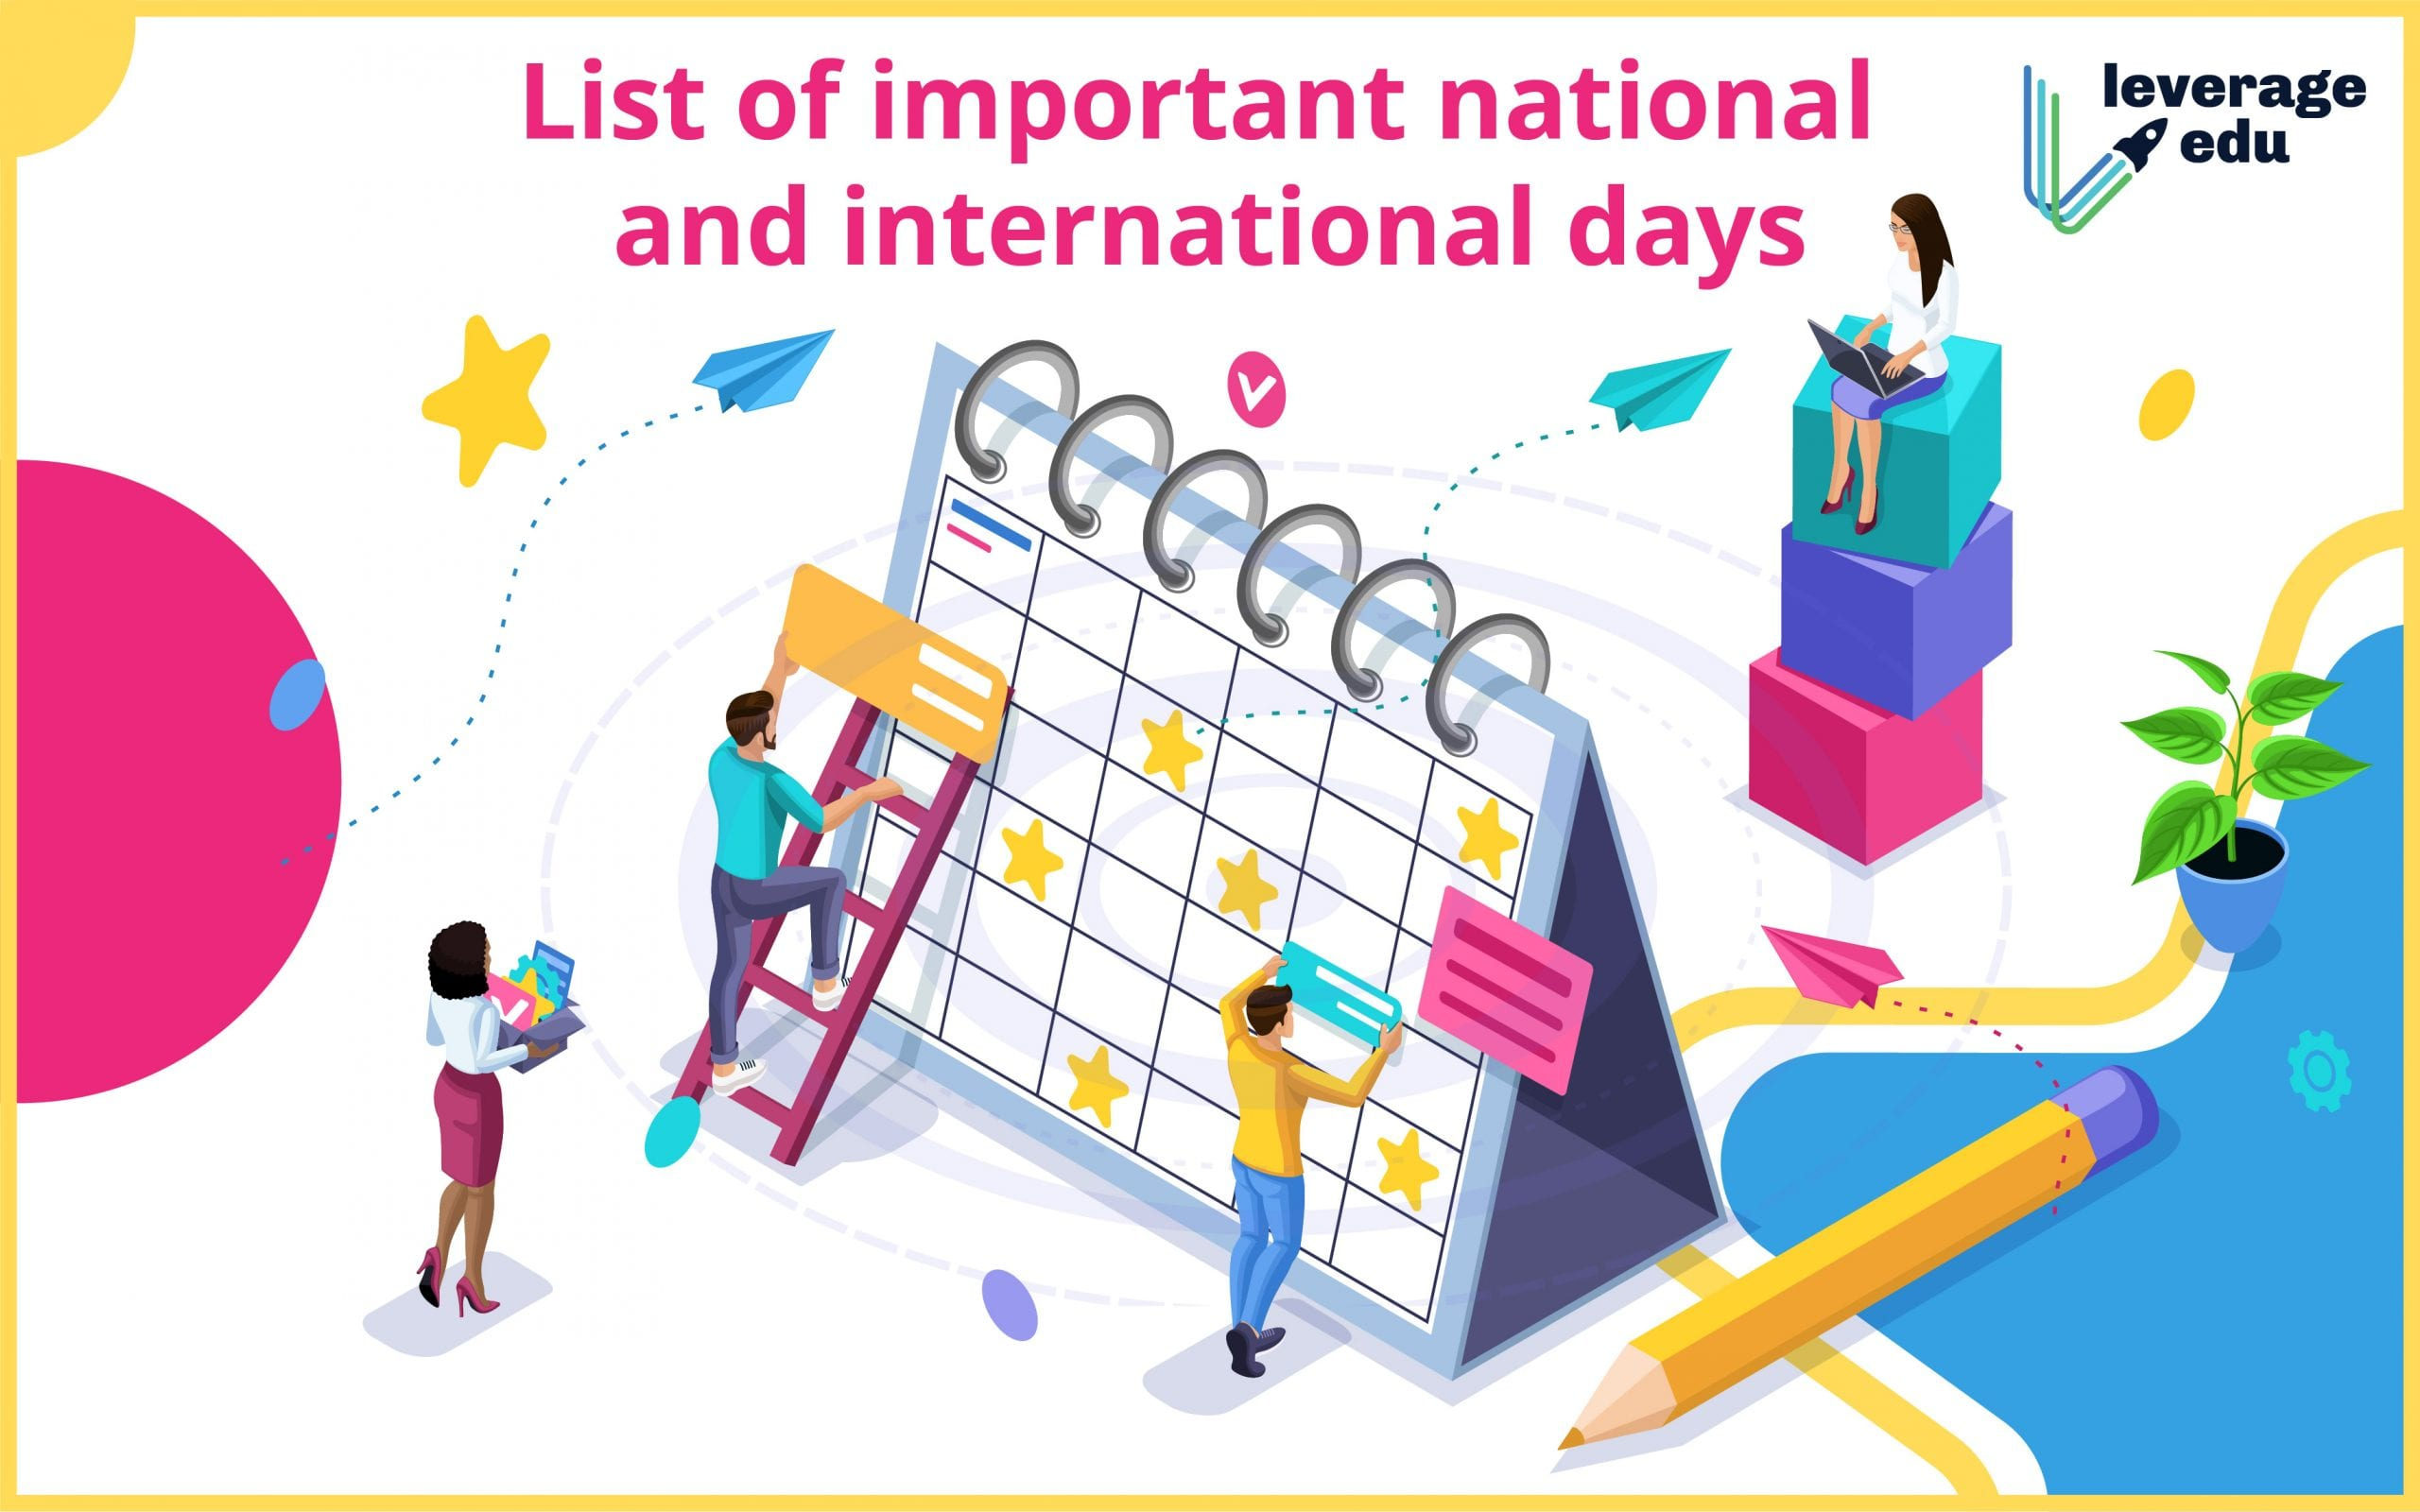 List Of Important National And International Days In 2021